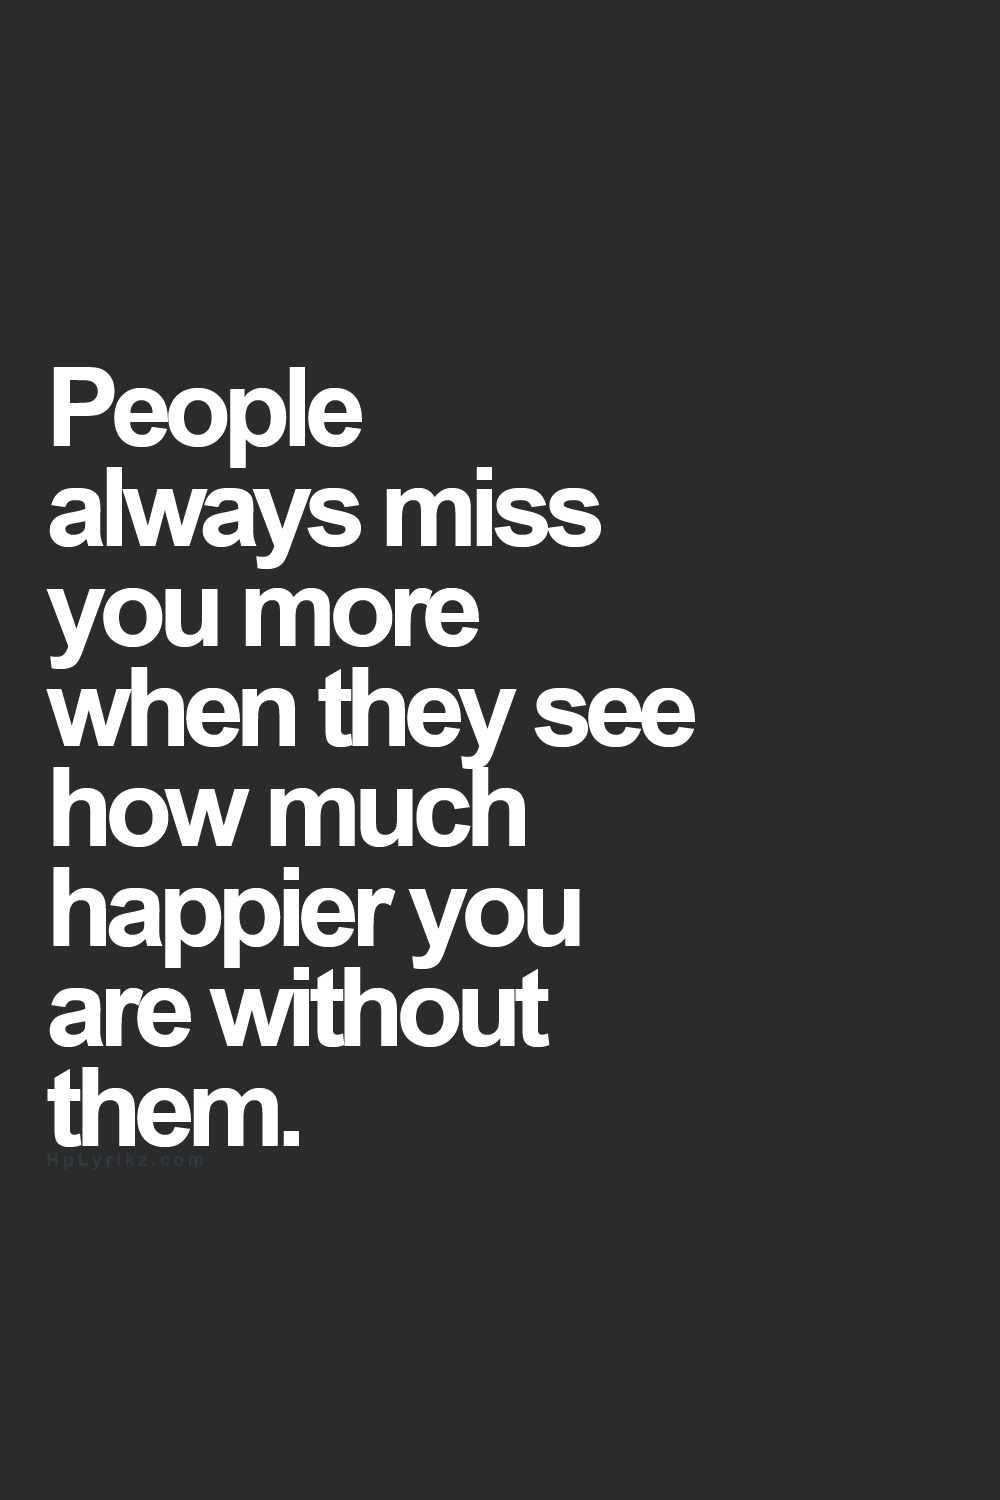 Miss Quotes People Always Miss You More When They See How Much Happier You Are